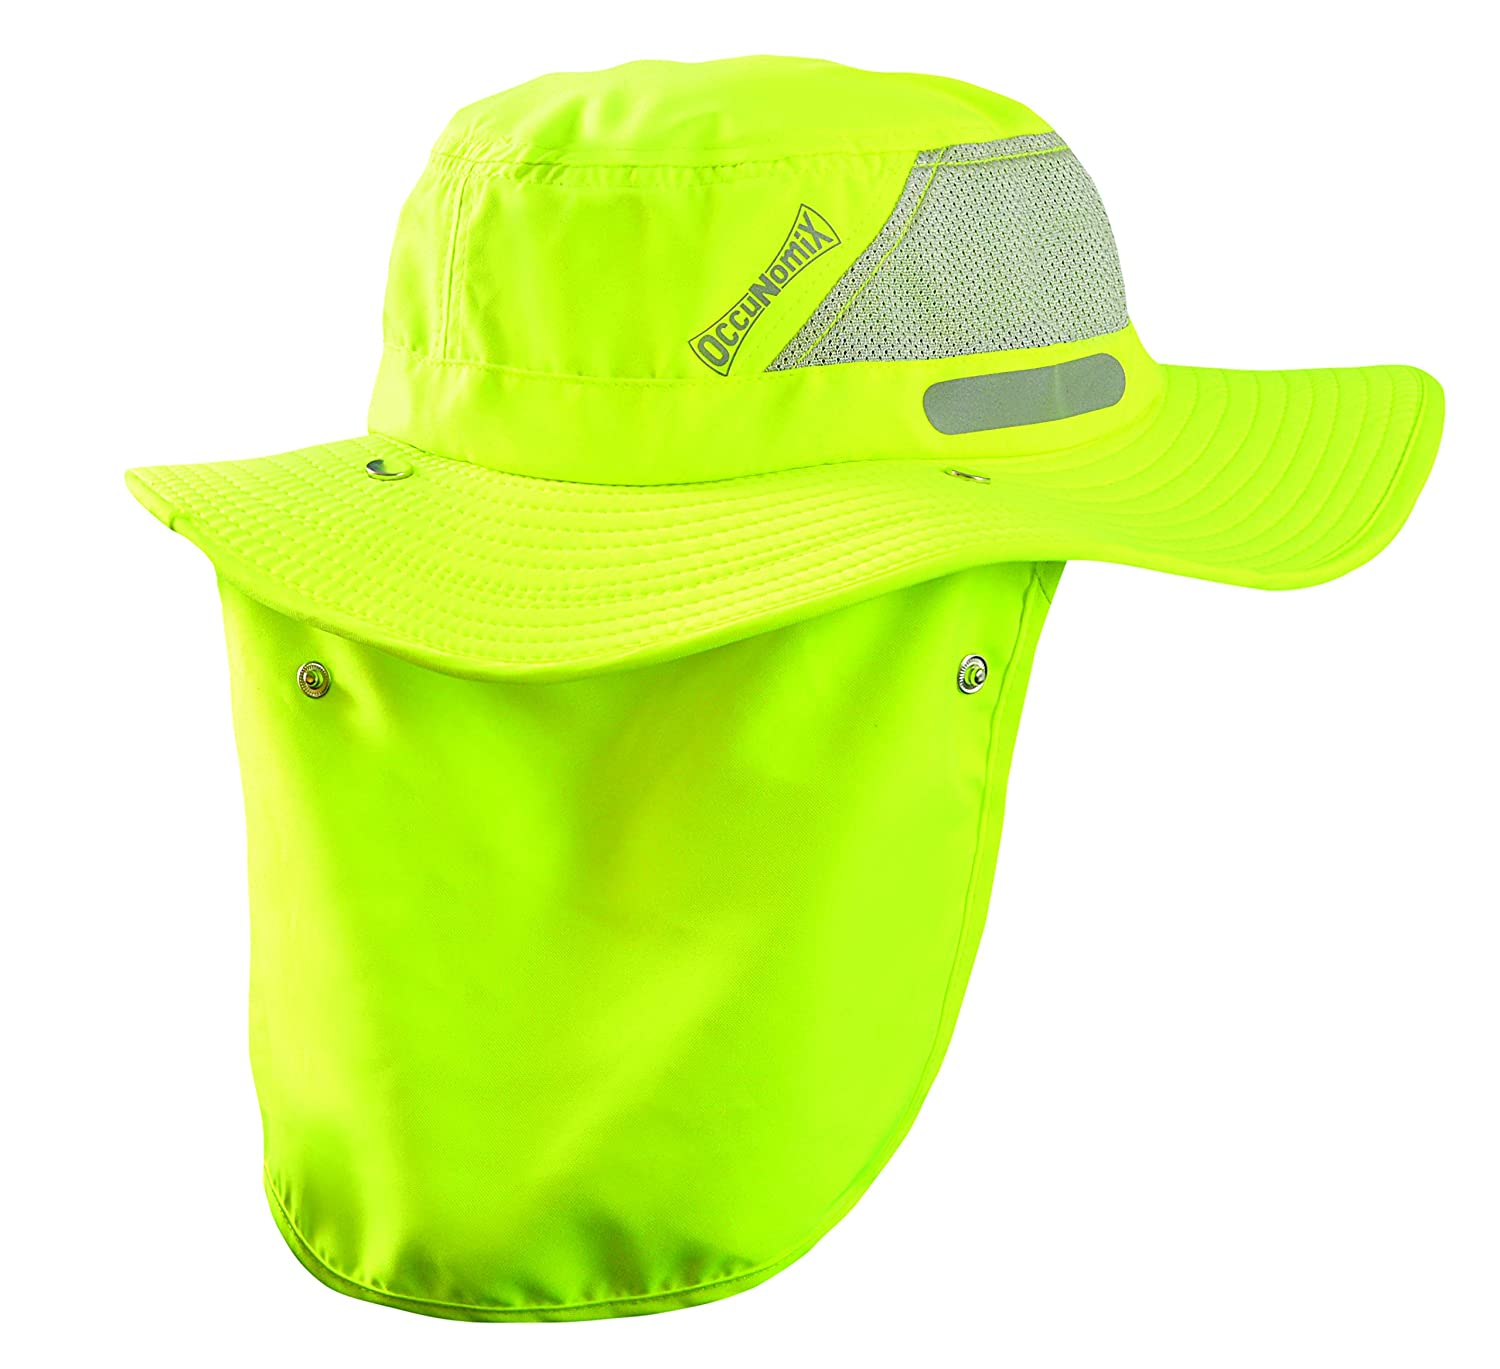 OccuNomix Tuff & Dry Wicking & Cooling Hi Viz Yellow Ranger Hat with Neck Shade - Large - TD500-HVY-L